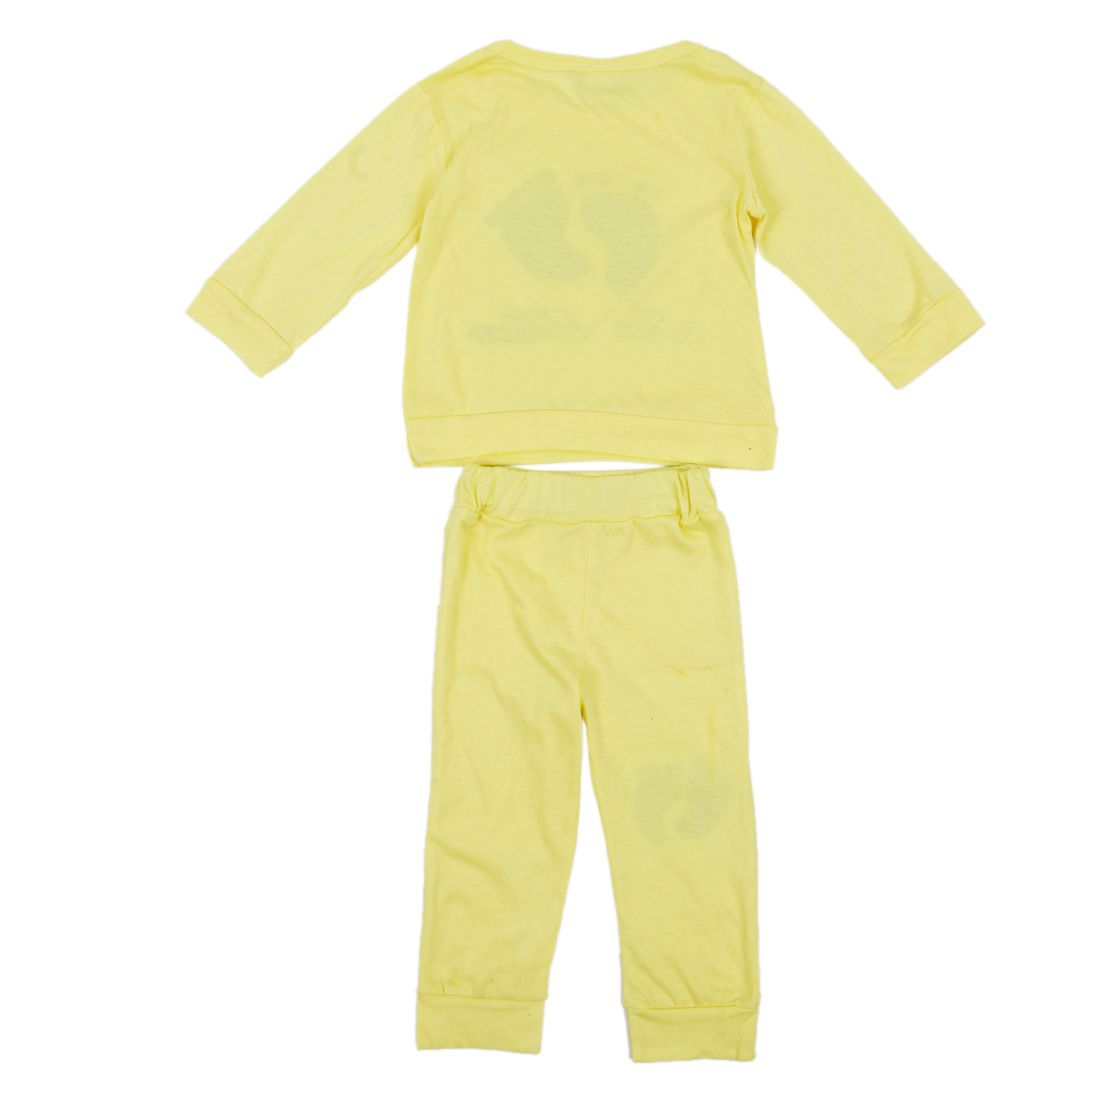 HOT SALE High Quality 100% Cotton baby clothing set,Toddlers children set,baby boys girls 2 pcs Footprints ,Hot sale-Yellow,73